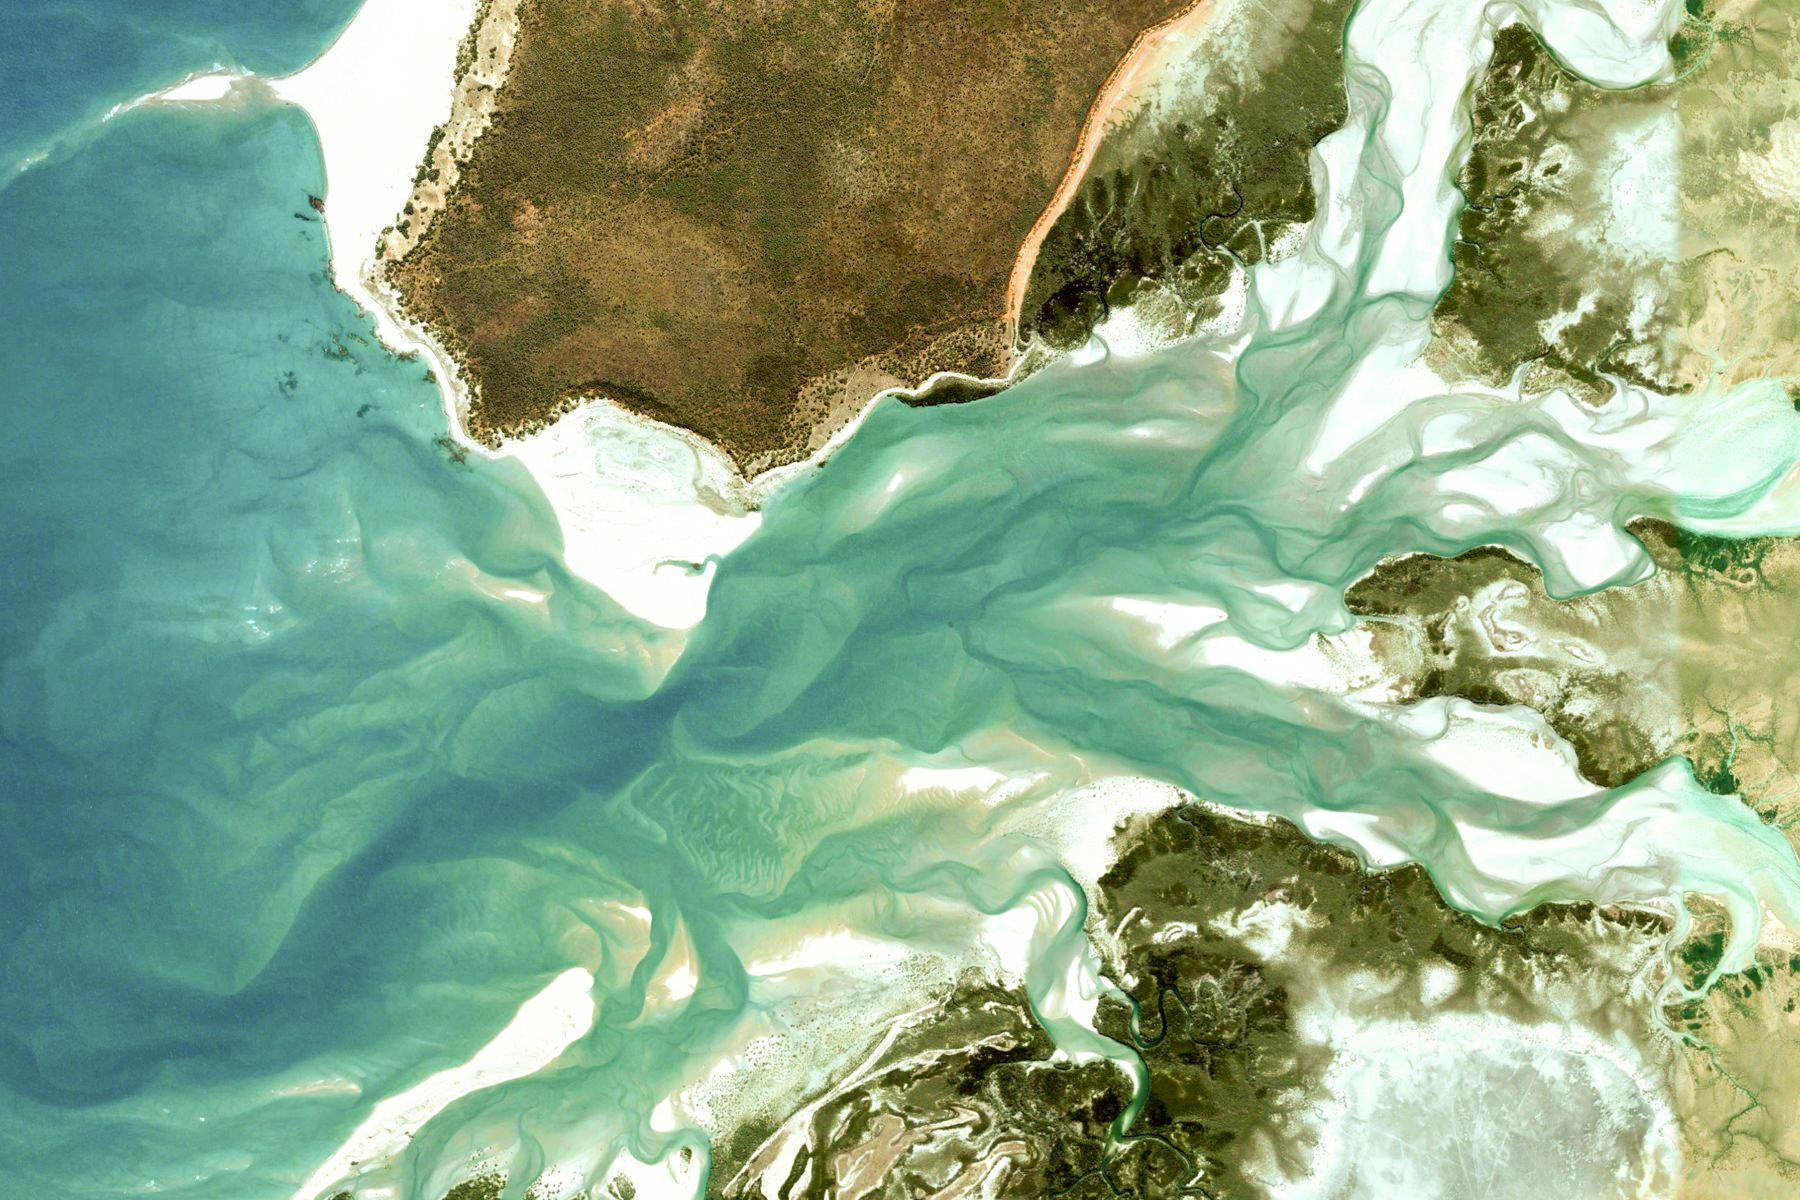 Earth View Collection Most Beautiful Images Australia